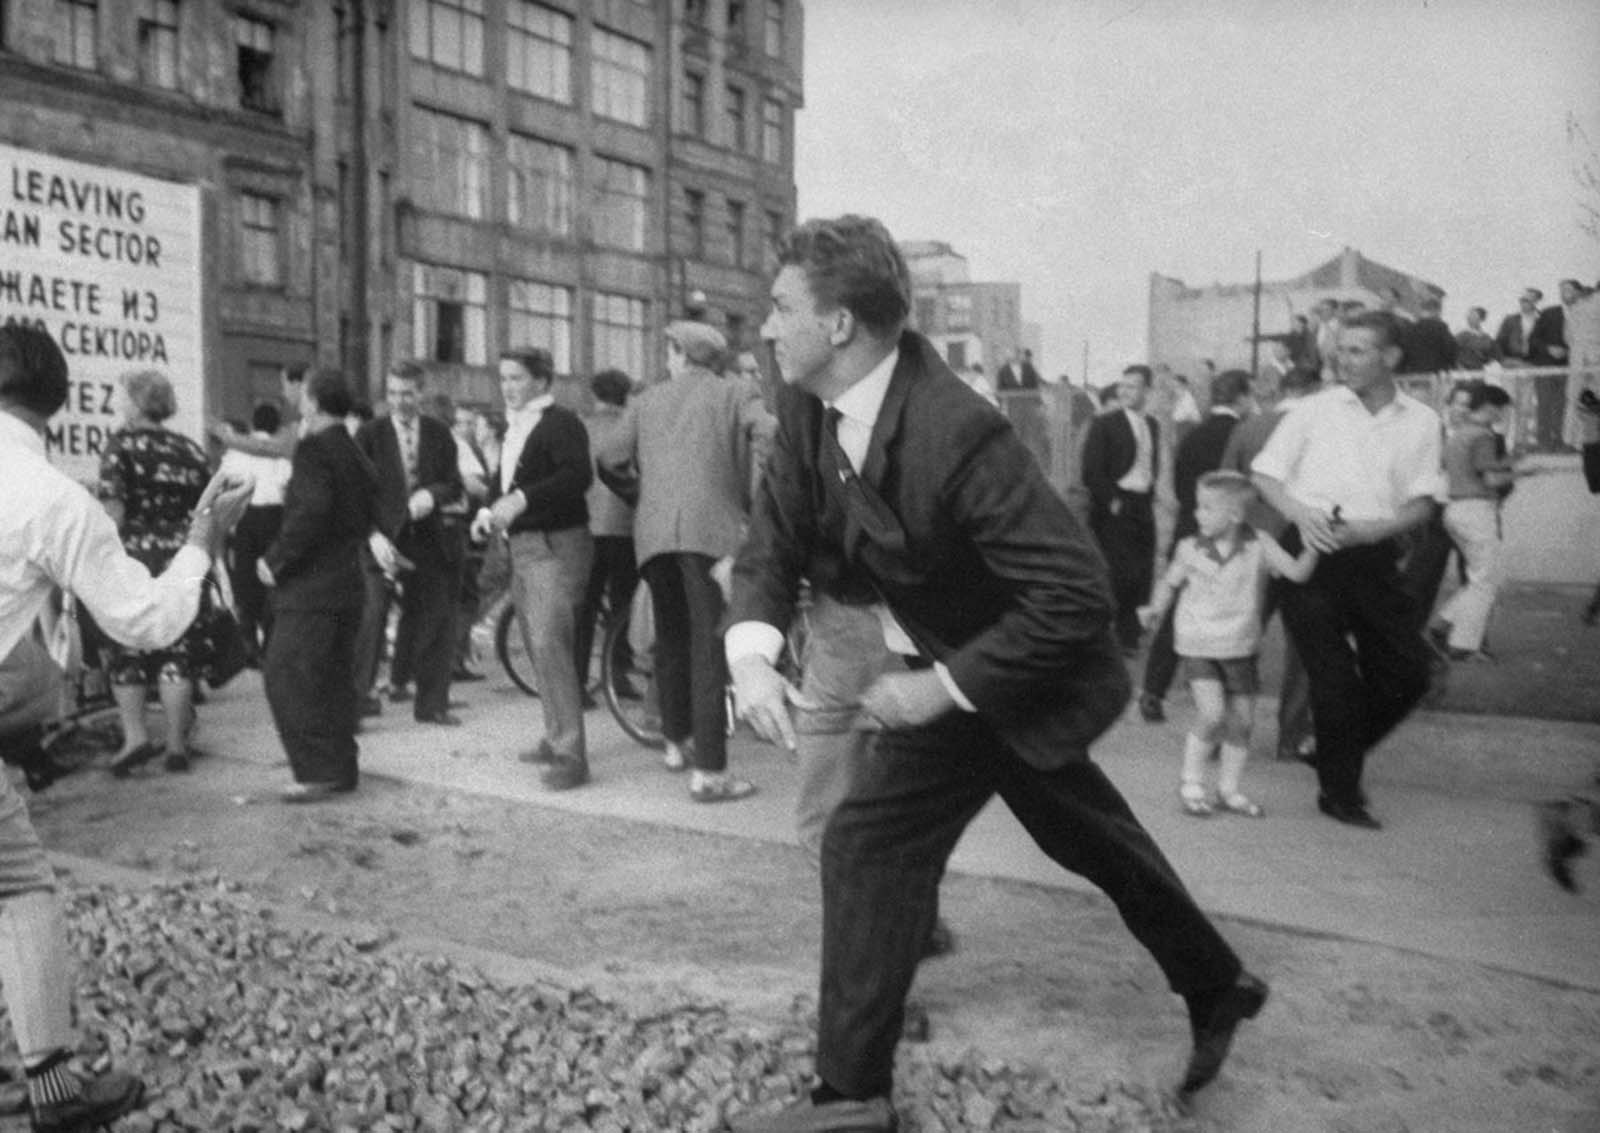 West Berliners, angered by taunts from East Berlin Police, throw rocks in August 1961.